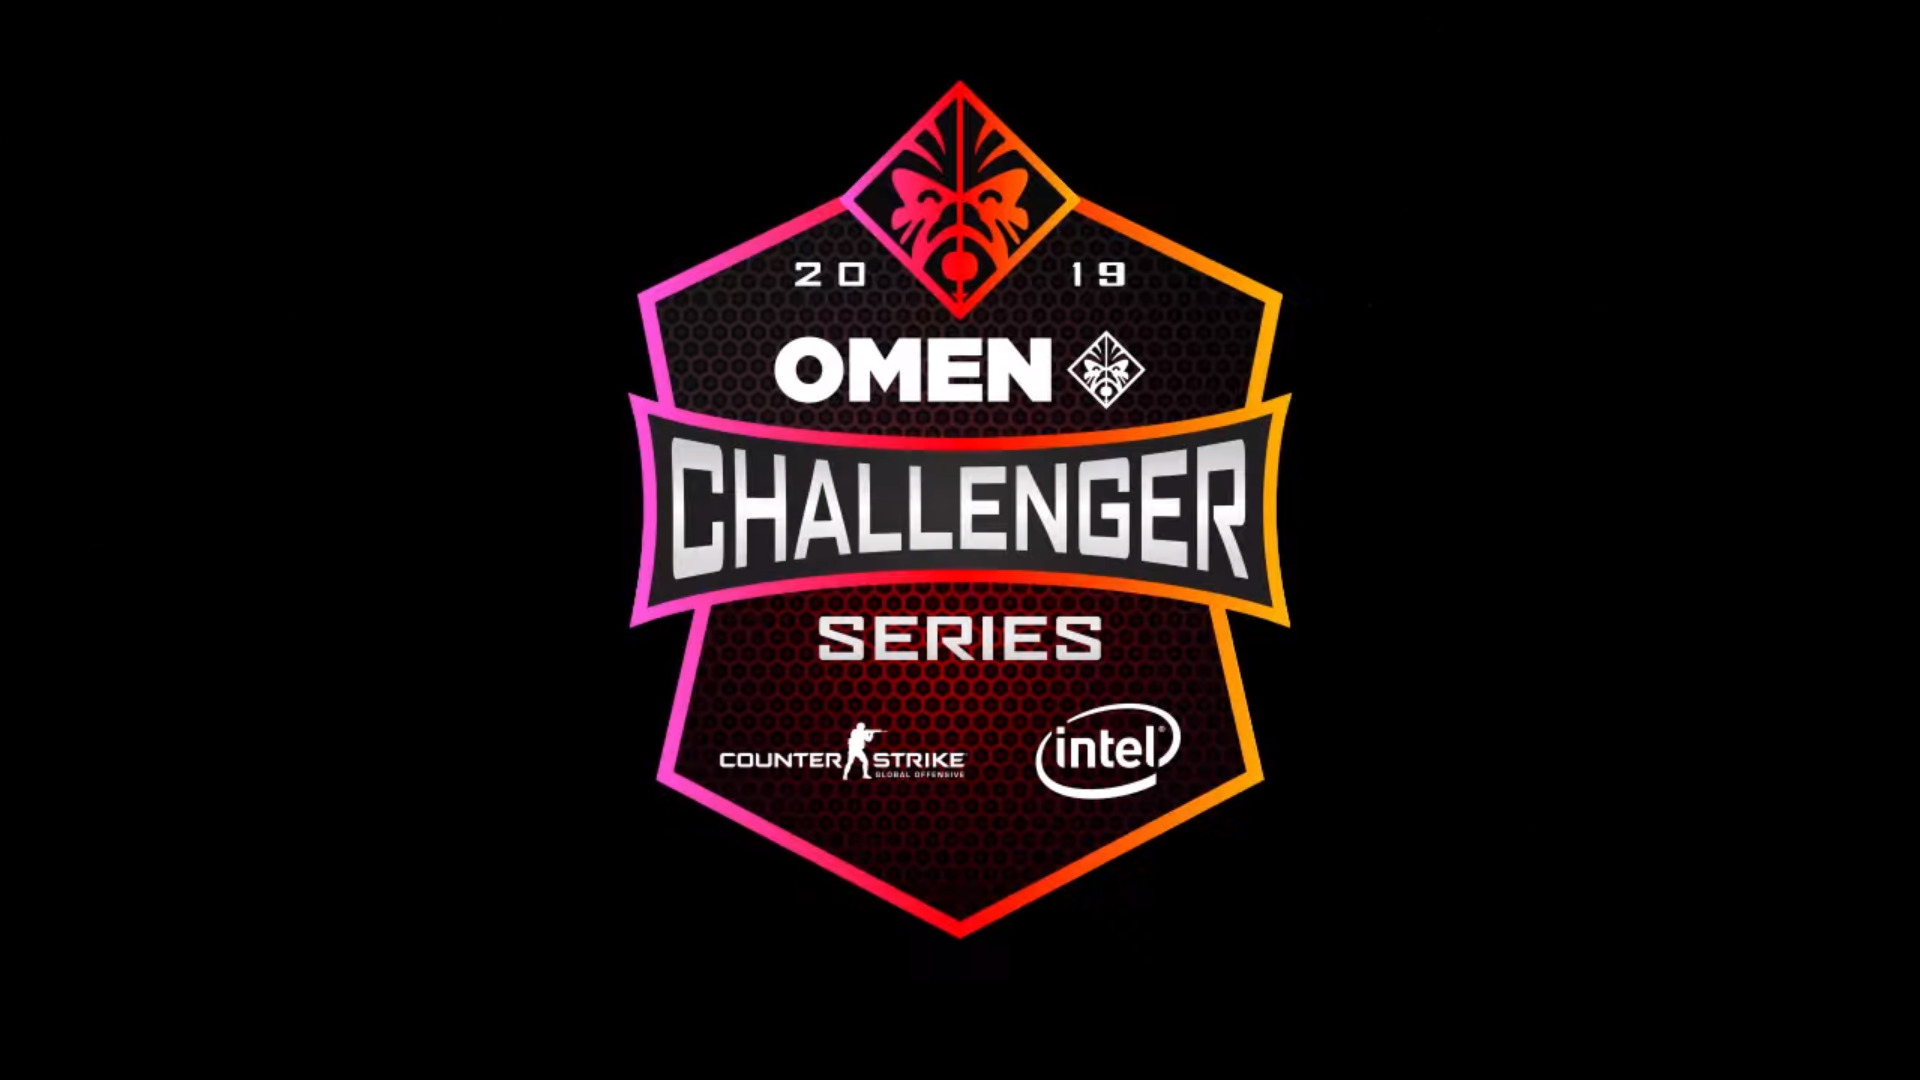 HP's OMEN Challenger Series returns to APAC with US$50K